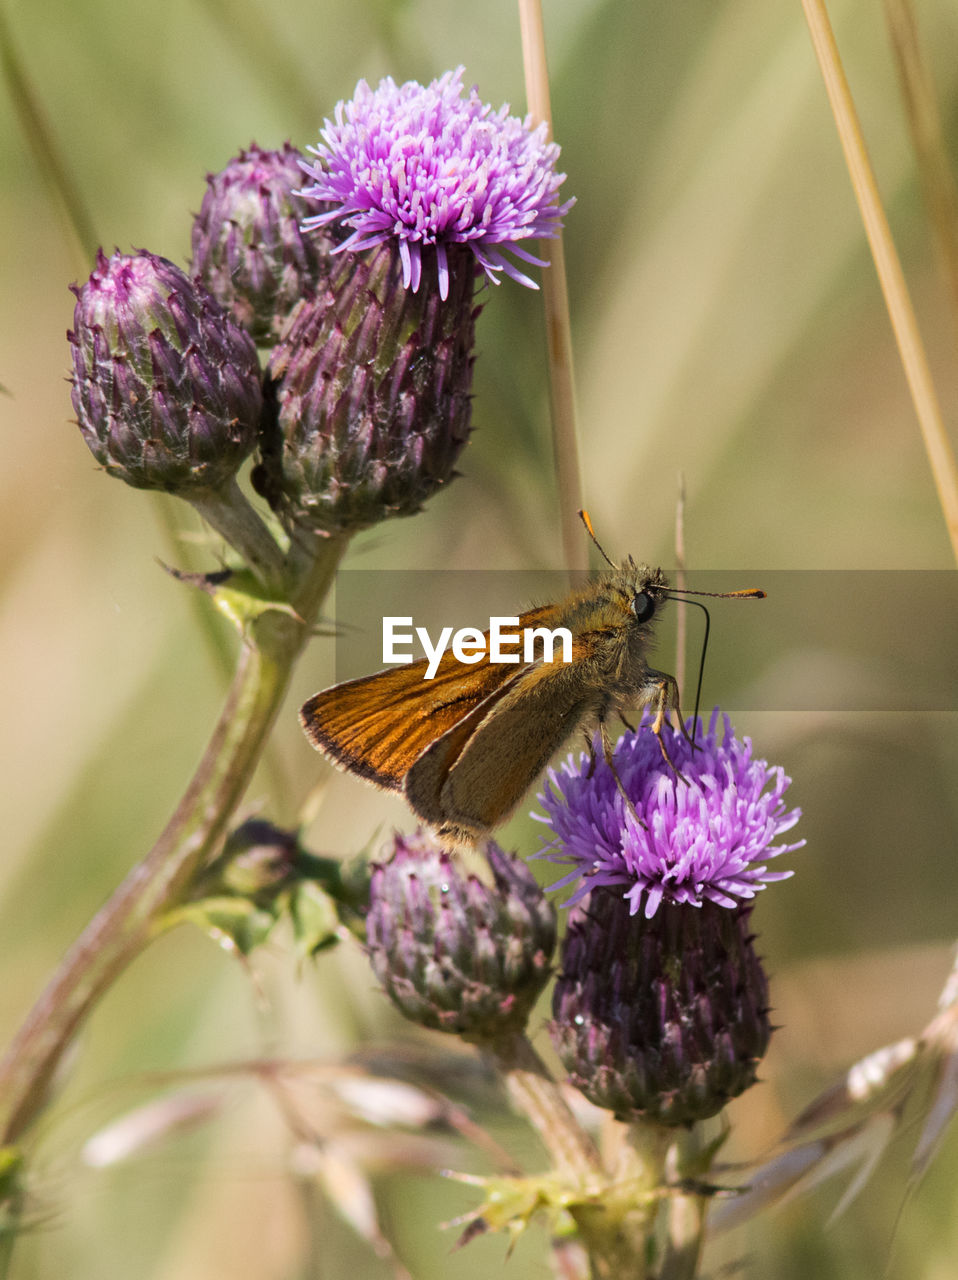 flower, flowering plant, plant, beauty in nature, animal themes, one animal, purple, animal, insect, animals in the wild, invertebrate, animal wildlife, freshness, close-up, growth, fragility, petal, flower head, vulnerability, nature, animal wing, pollination, no people, butterfly - insect, outdoors